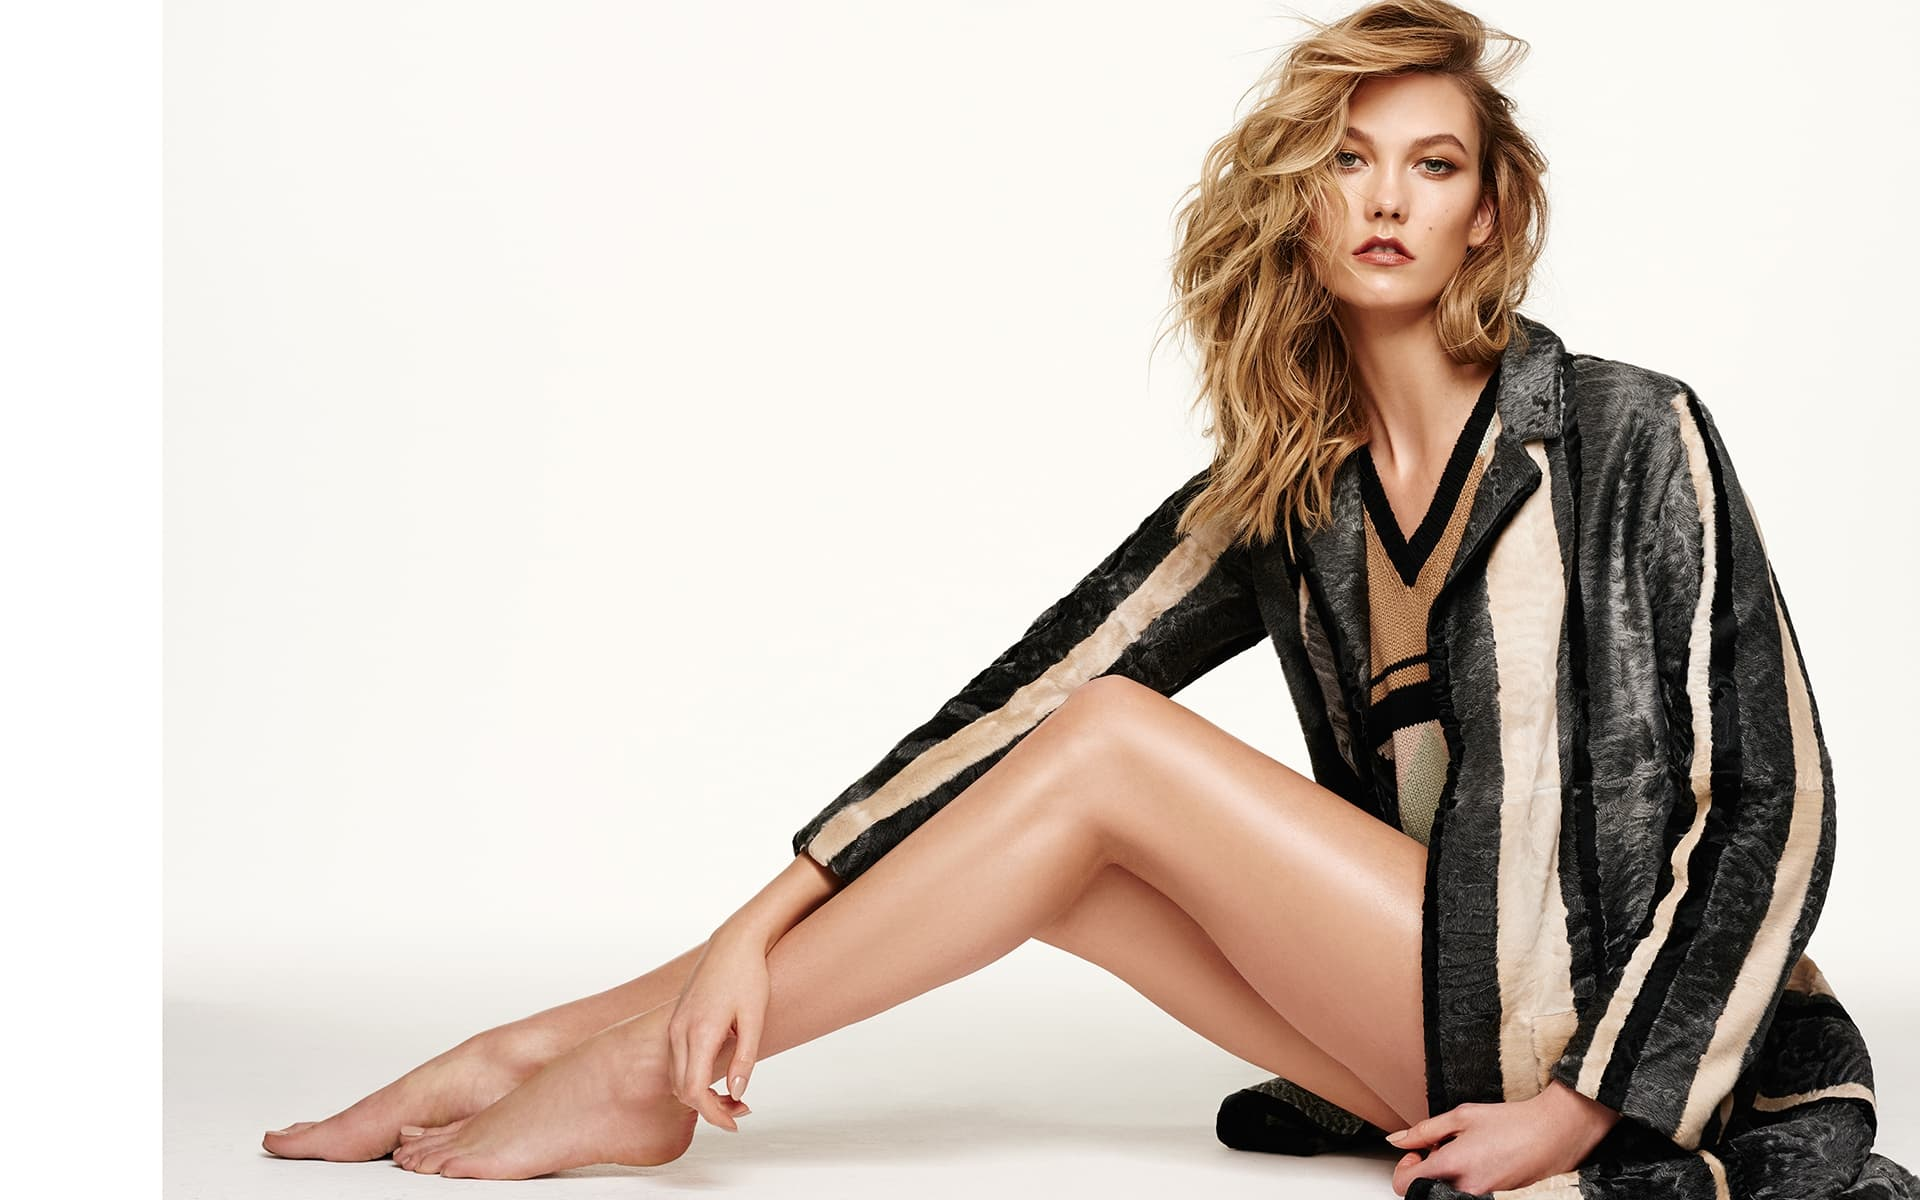 Karlie Kloss sexy lady picture